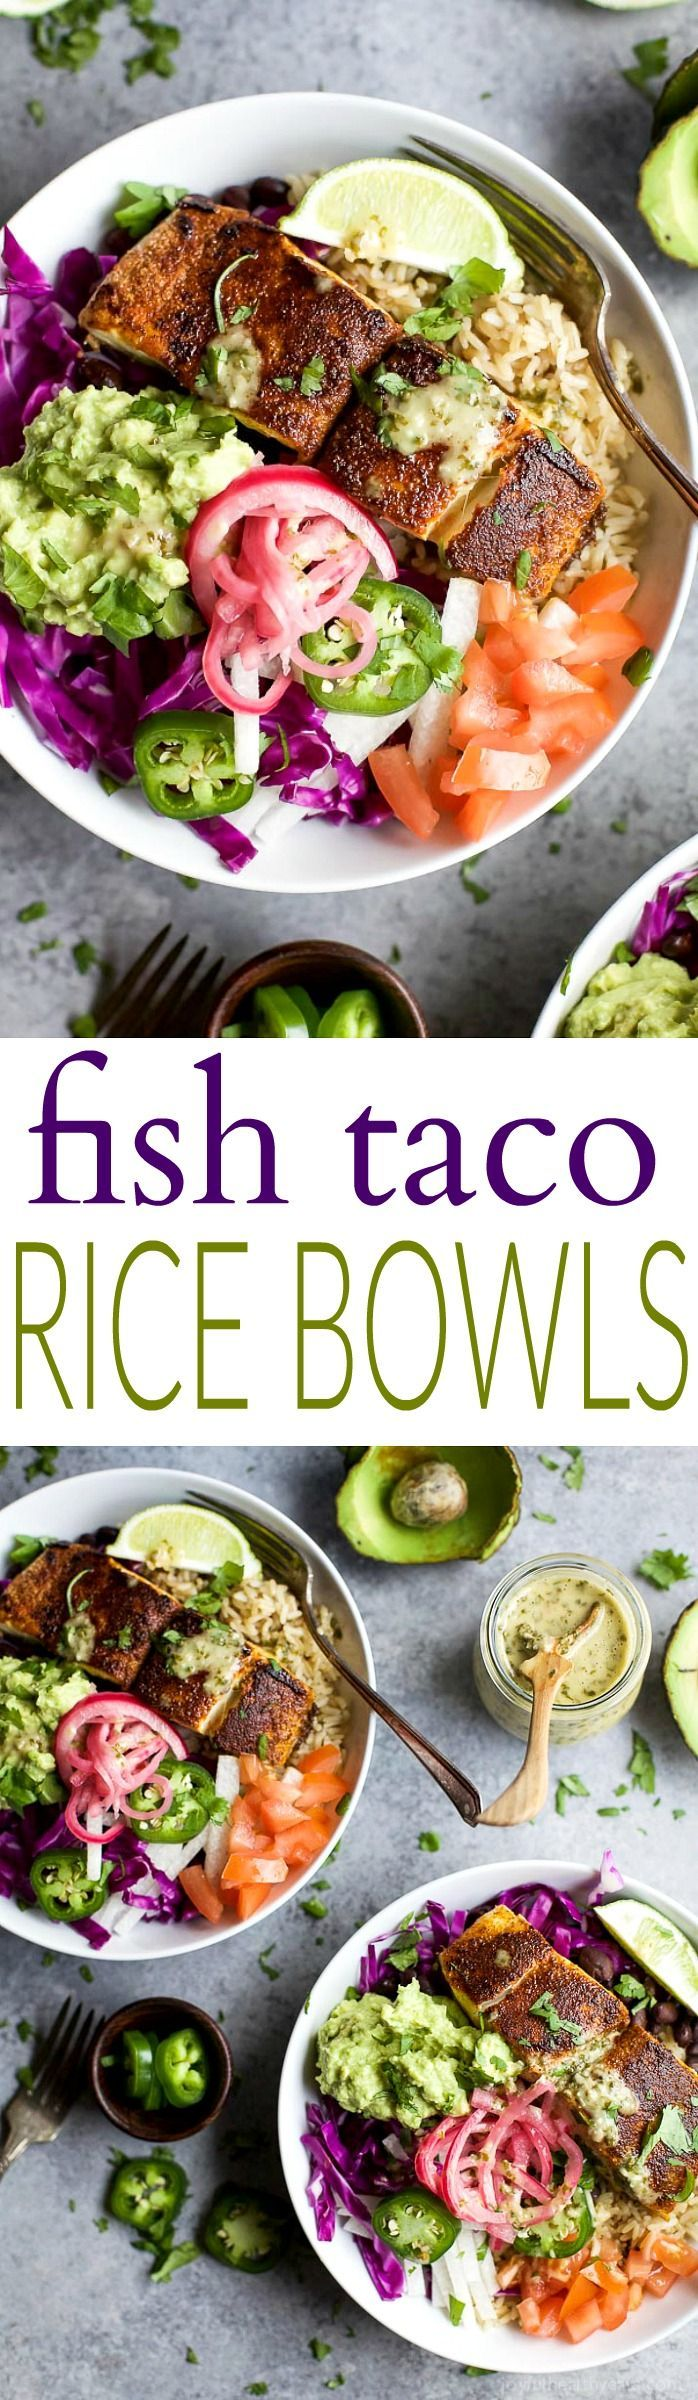 FISH TACO RICE BOWLS with avocado and pickled onions, topped with a Cilantro Lime Dressing! The perfect 30 minute meal to satisfy even the pickiest of eaters! | http://joyfulhealthyeats.com | Gluten Free Recipes